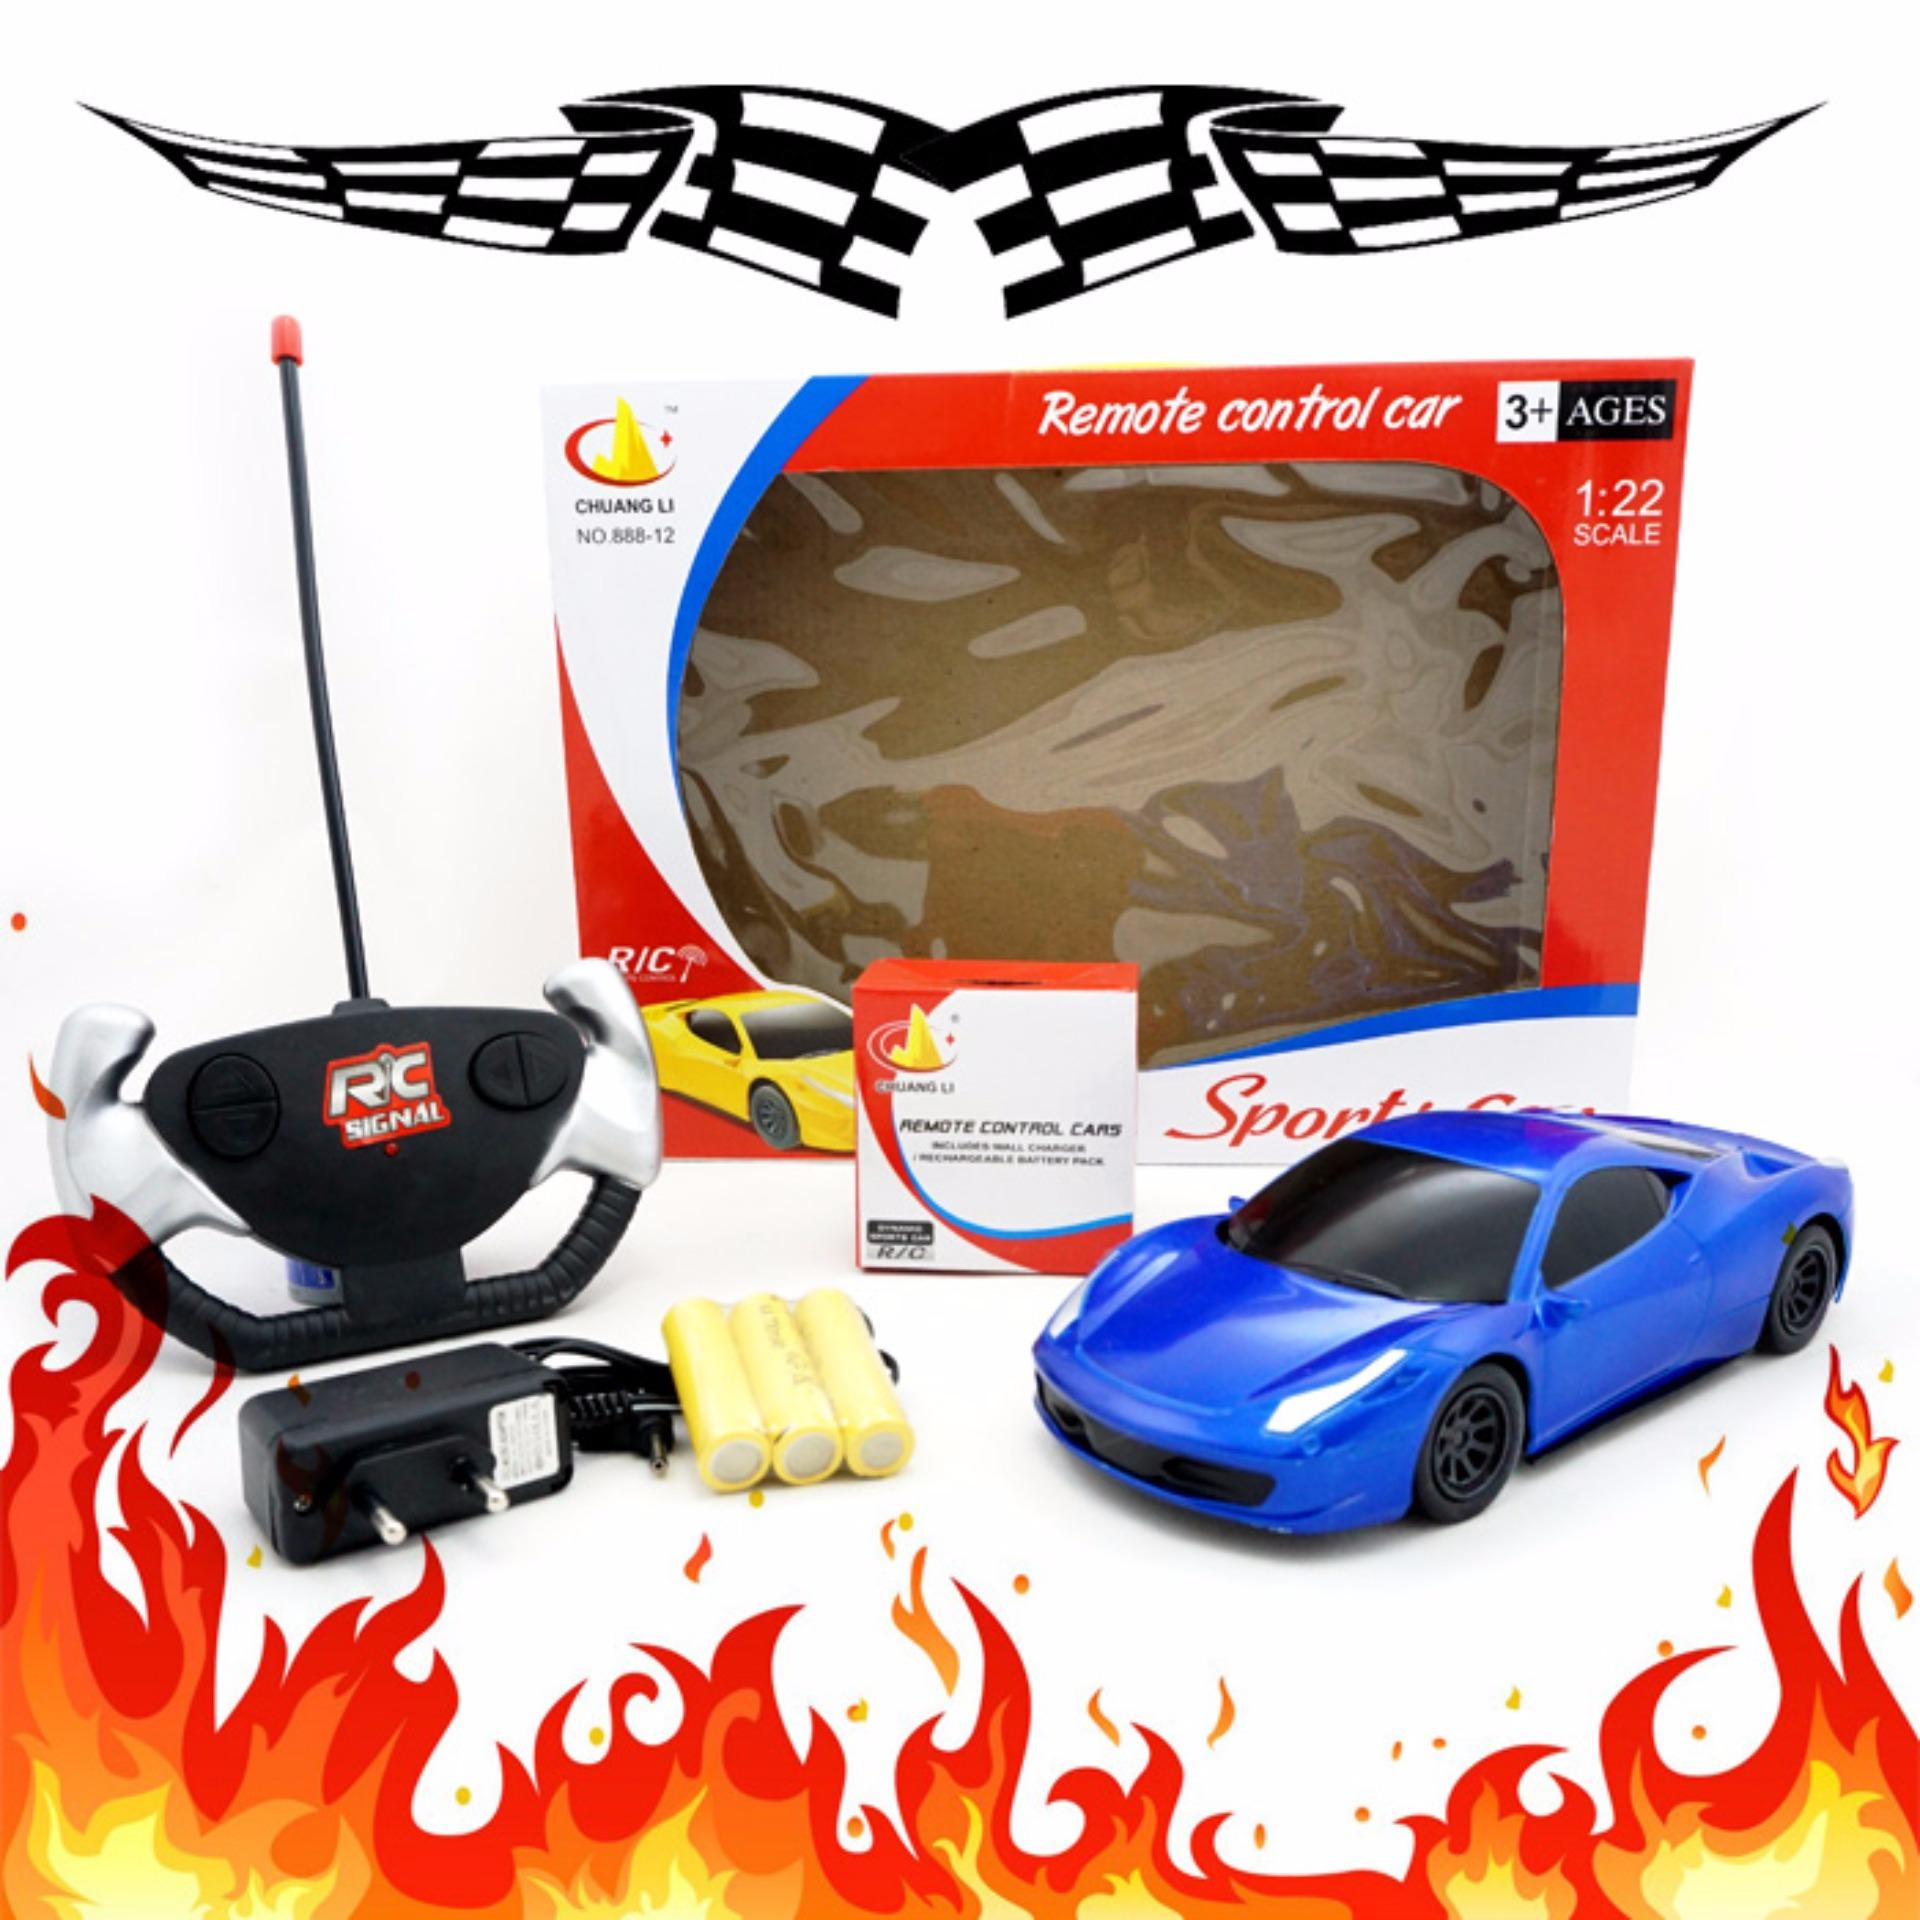 TSH Mainan Mobil Remote Control RC SPORT CAR Charger 1:22 -